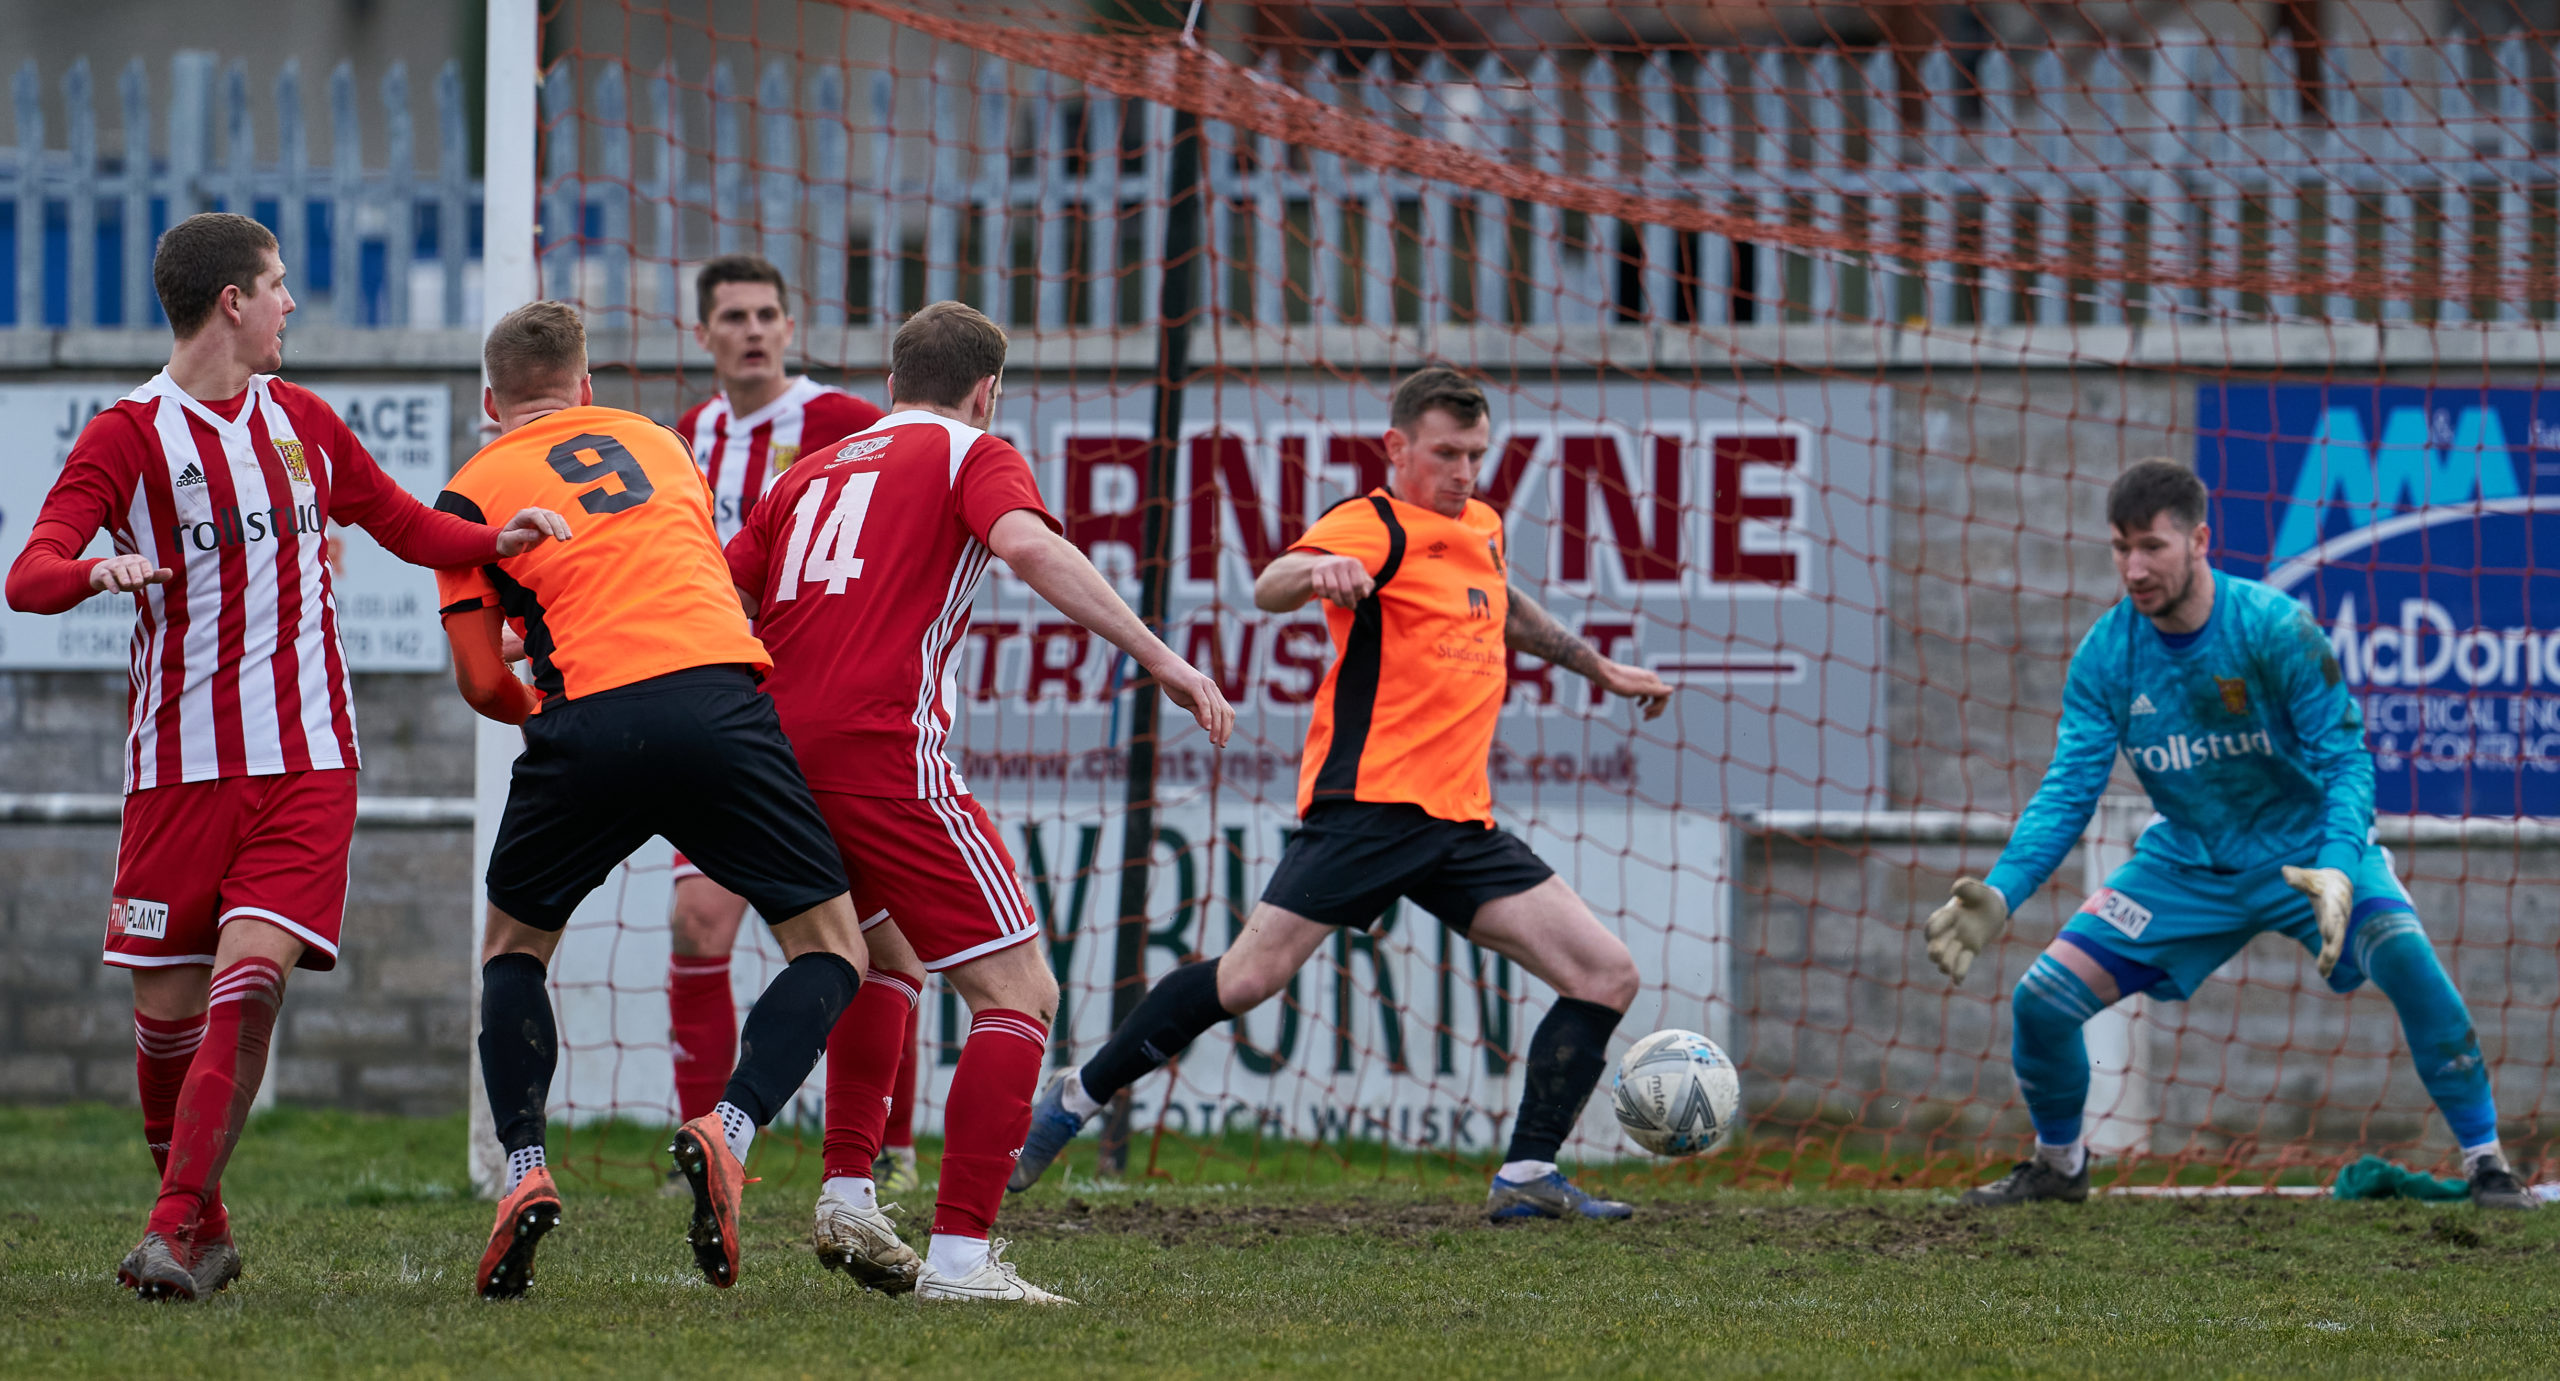 Will there be any Highland League action next season?